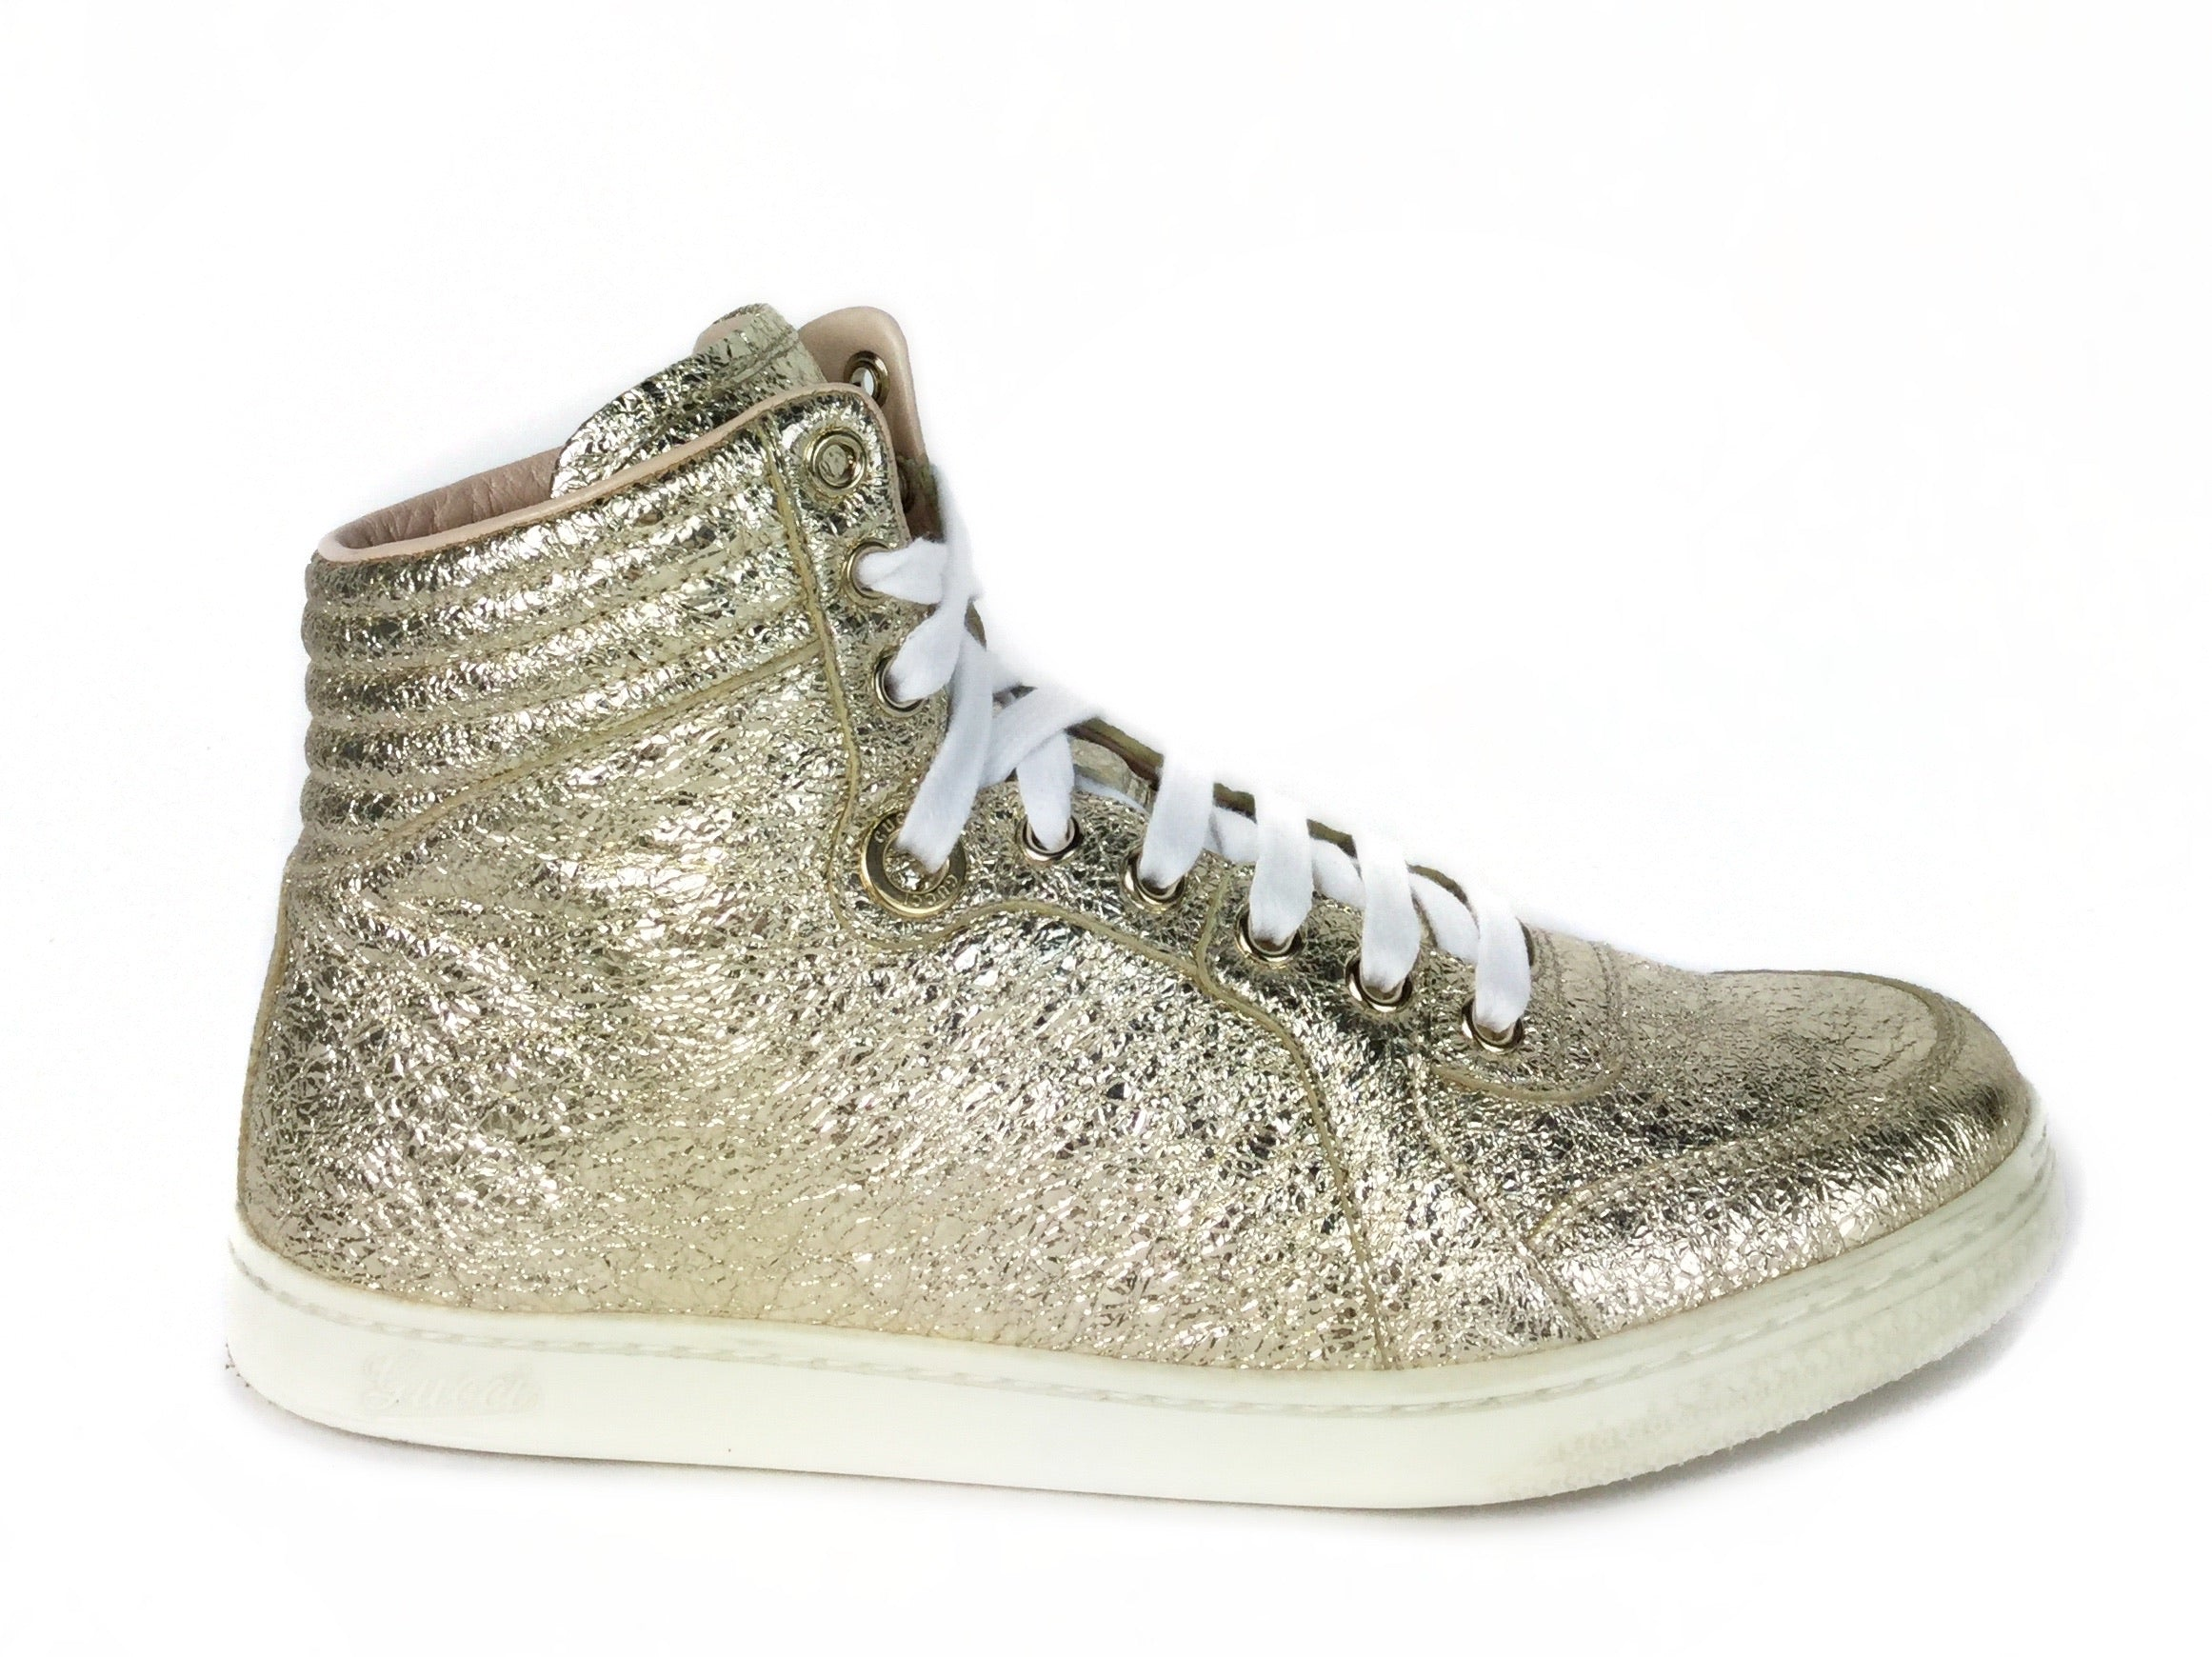 Gucci Metallic Galassia Leather Sneaker 37G